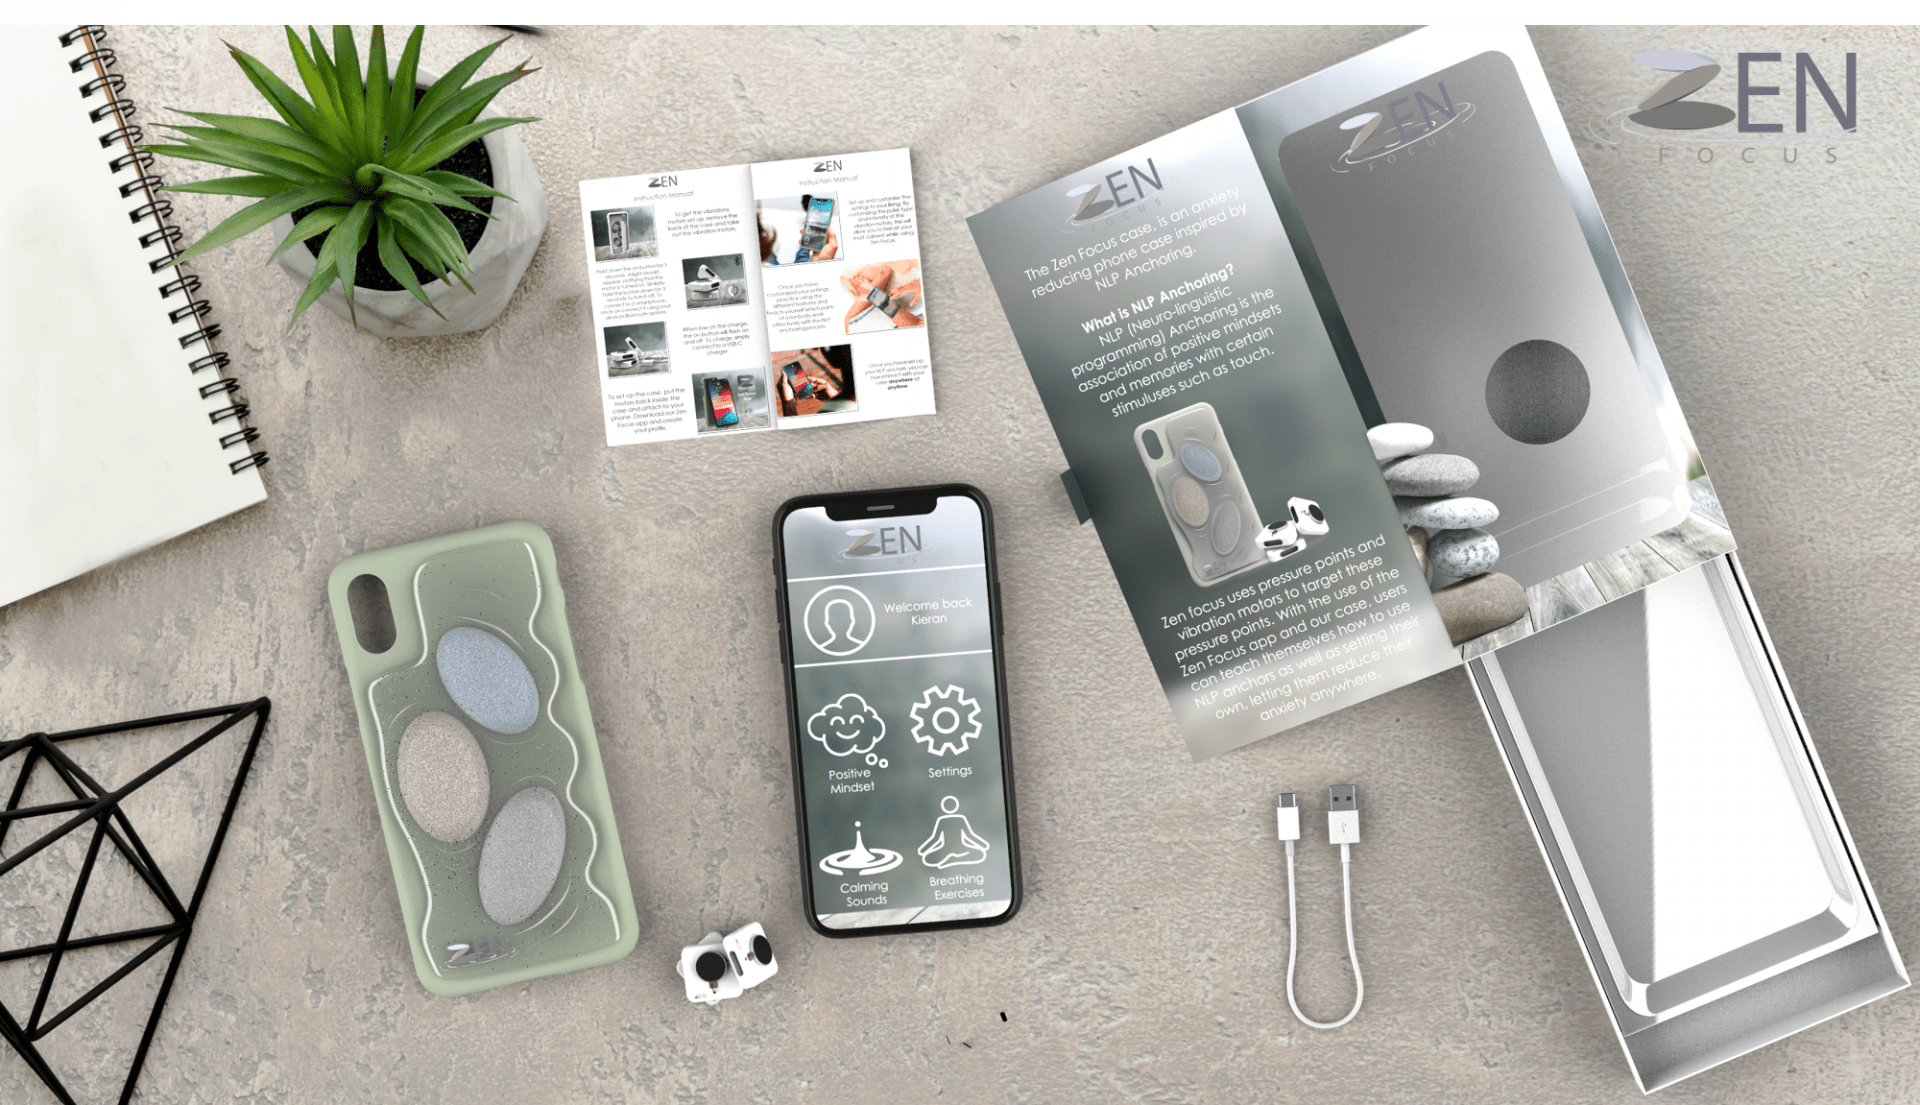 Flatlay showing all that is included when you buy a Zen Focus phone case, including a phone, case, booklet, app, box and cable.